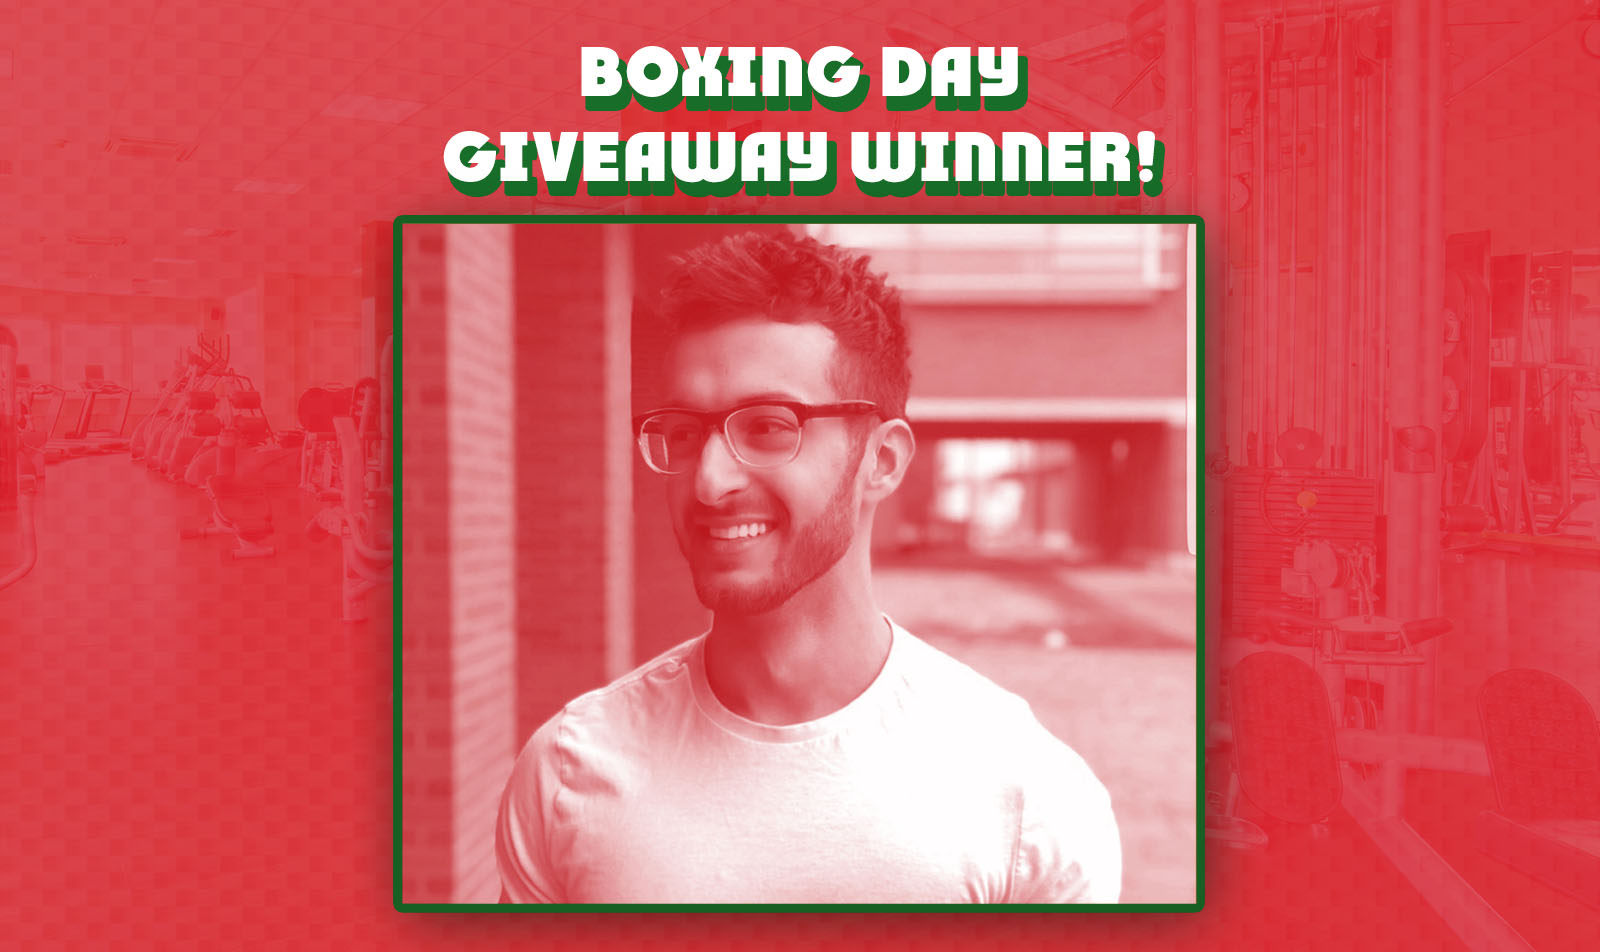 Congratulations to our Boxing Day Give Away Winner